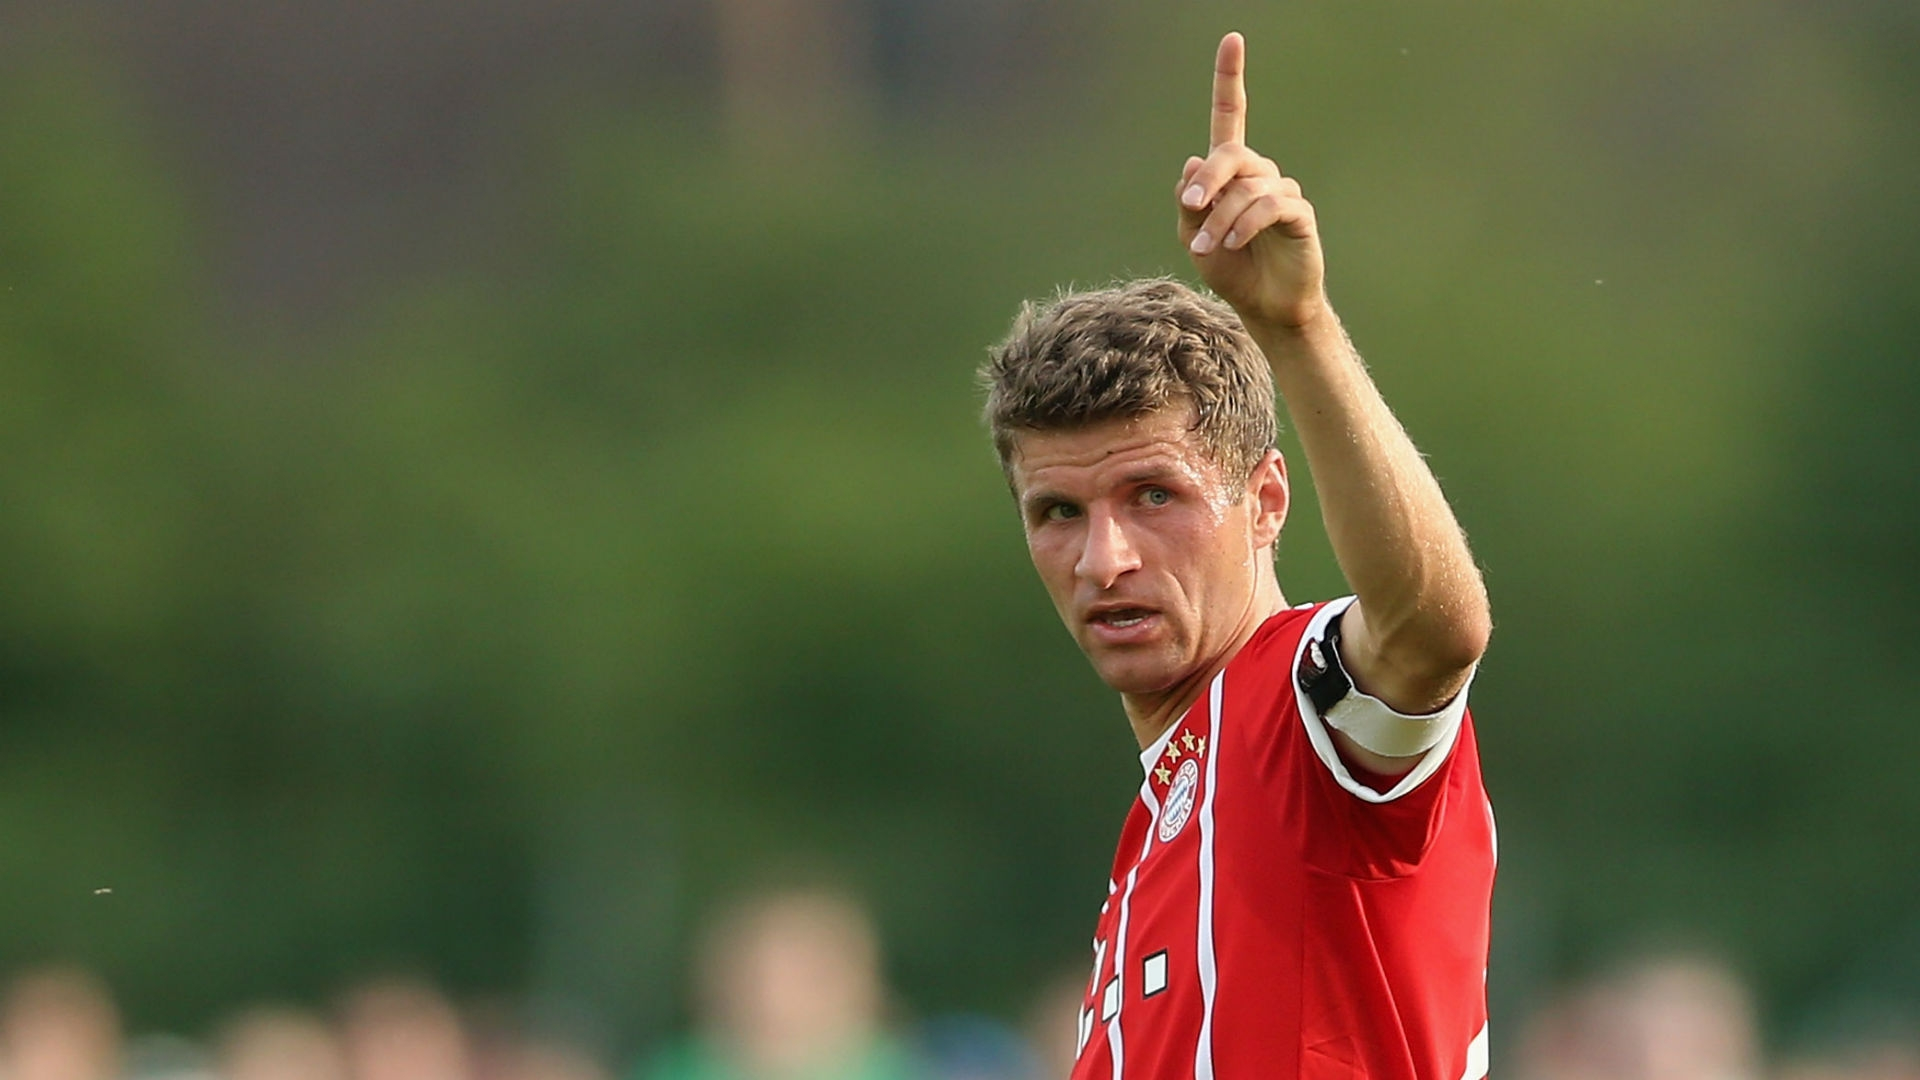 Muller was purposely left out by coach Joachim Low of the squad that took place and ultimately won, the Confederations Cup, to make way for more inexperienced players.